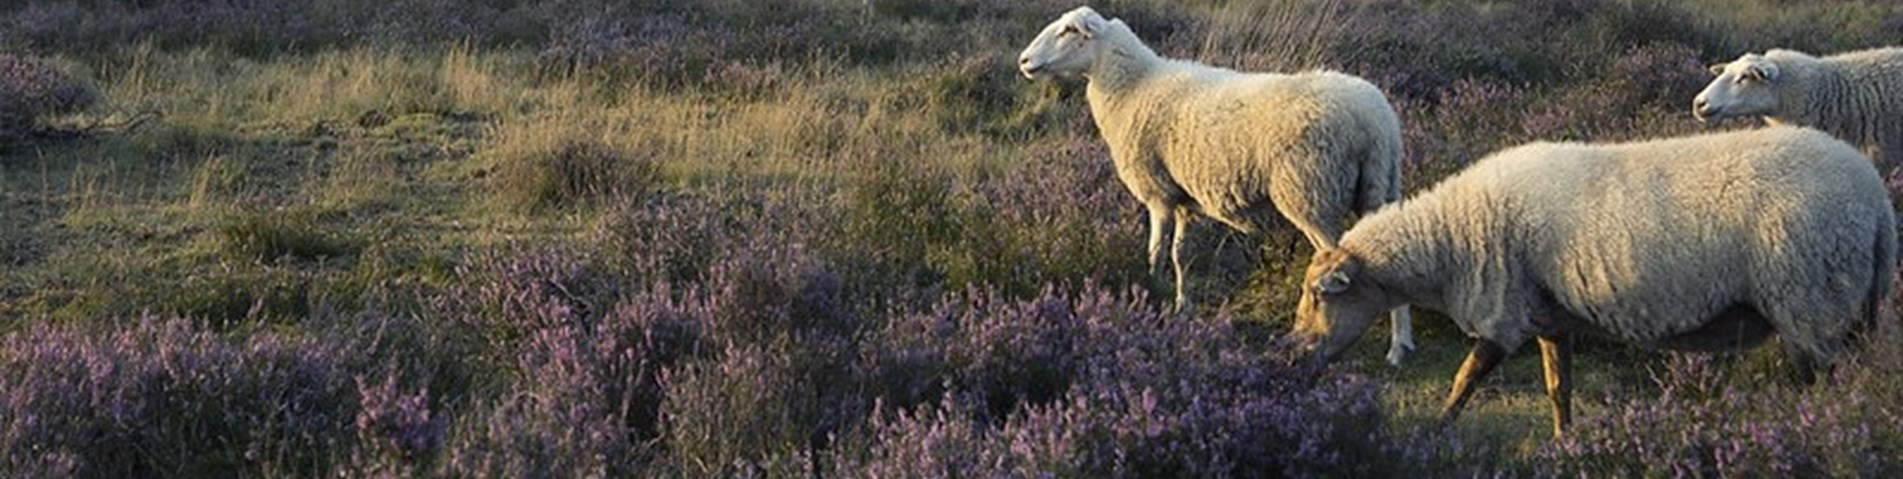 Sheep_heather_Flickr_RPID.jpg